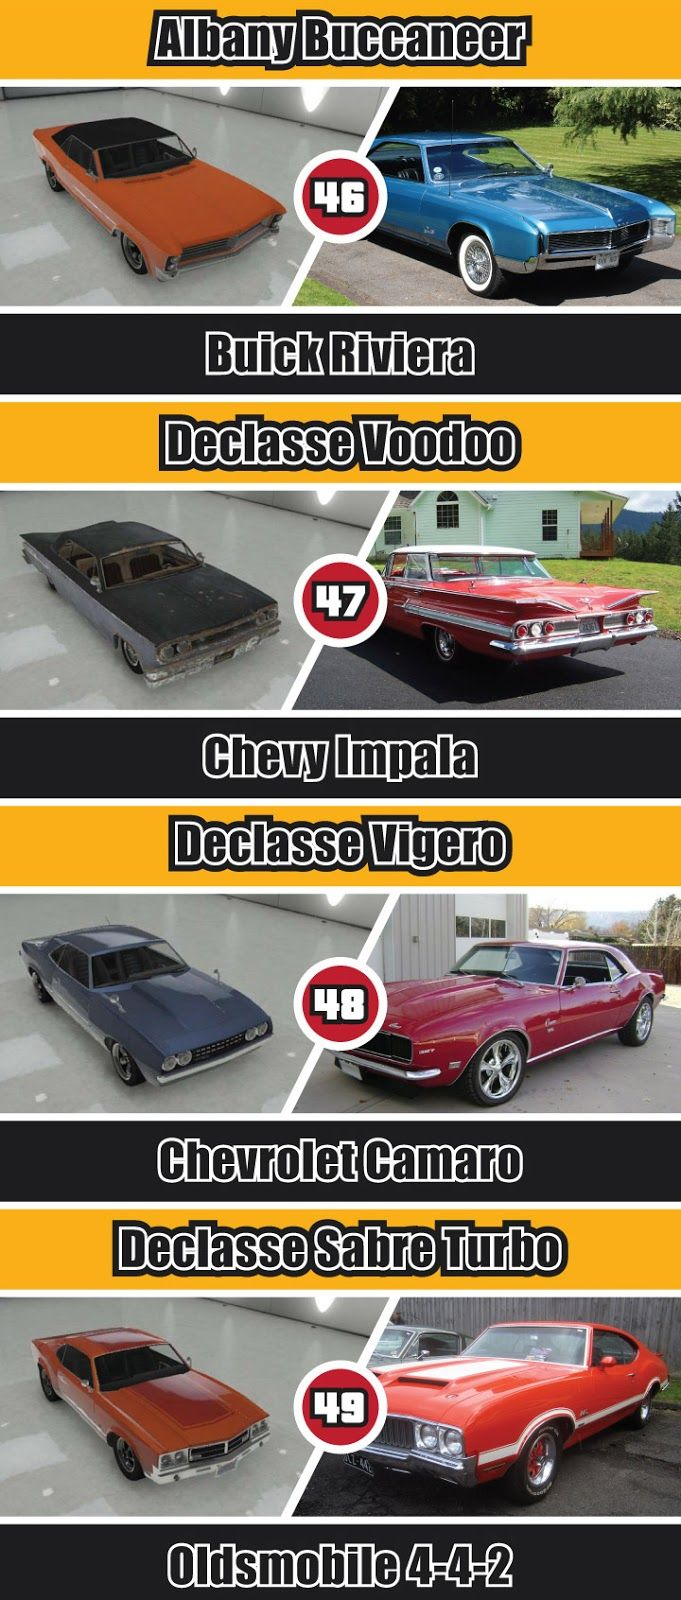 Gta v cars in this stunning infographic that are so like their real life counterparts it is unreal